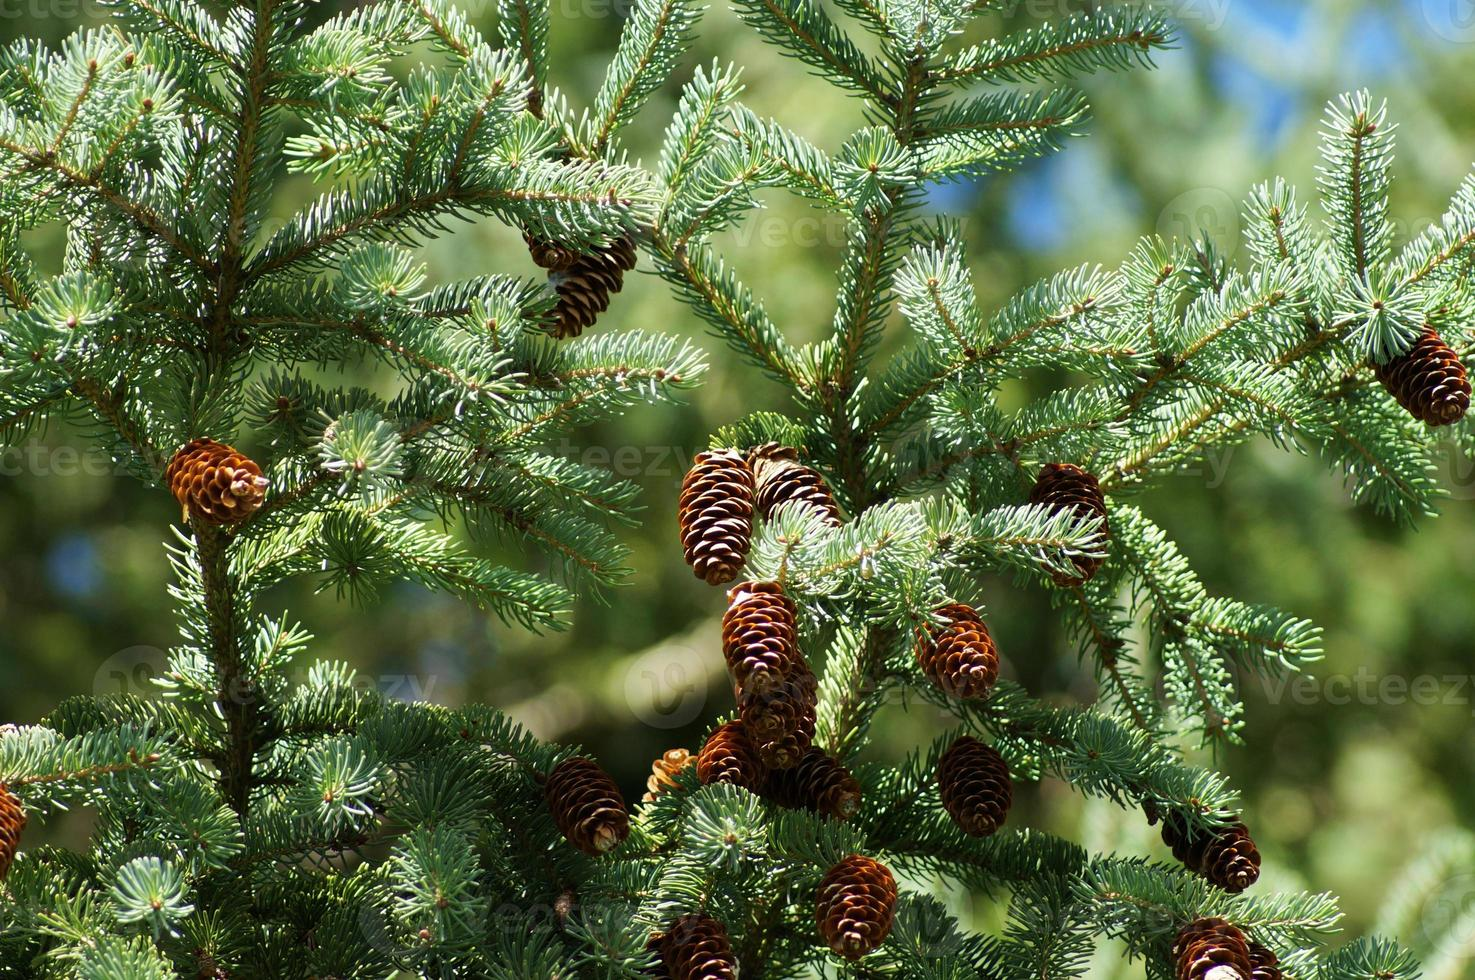 Close up pine branch with cone, outdoor scenery photo